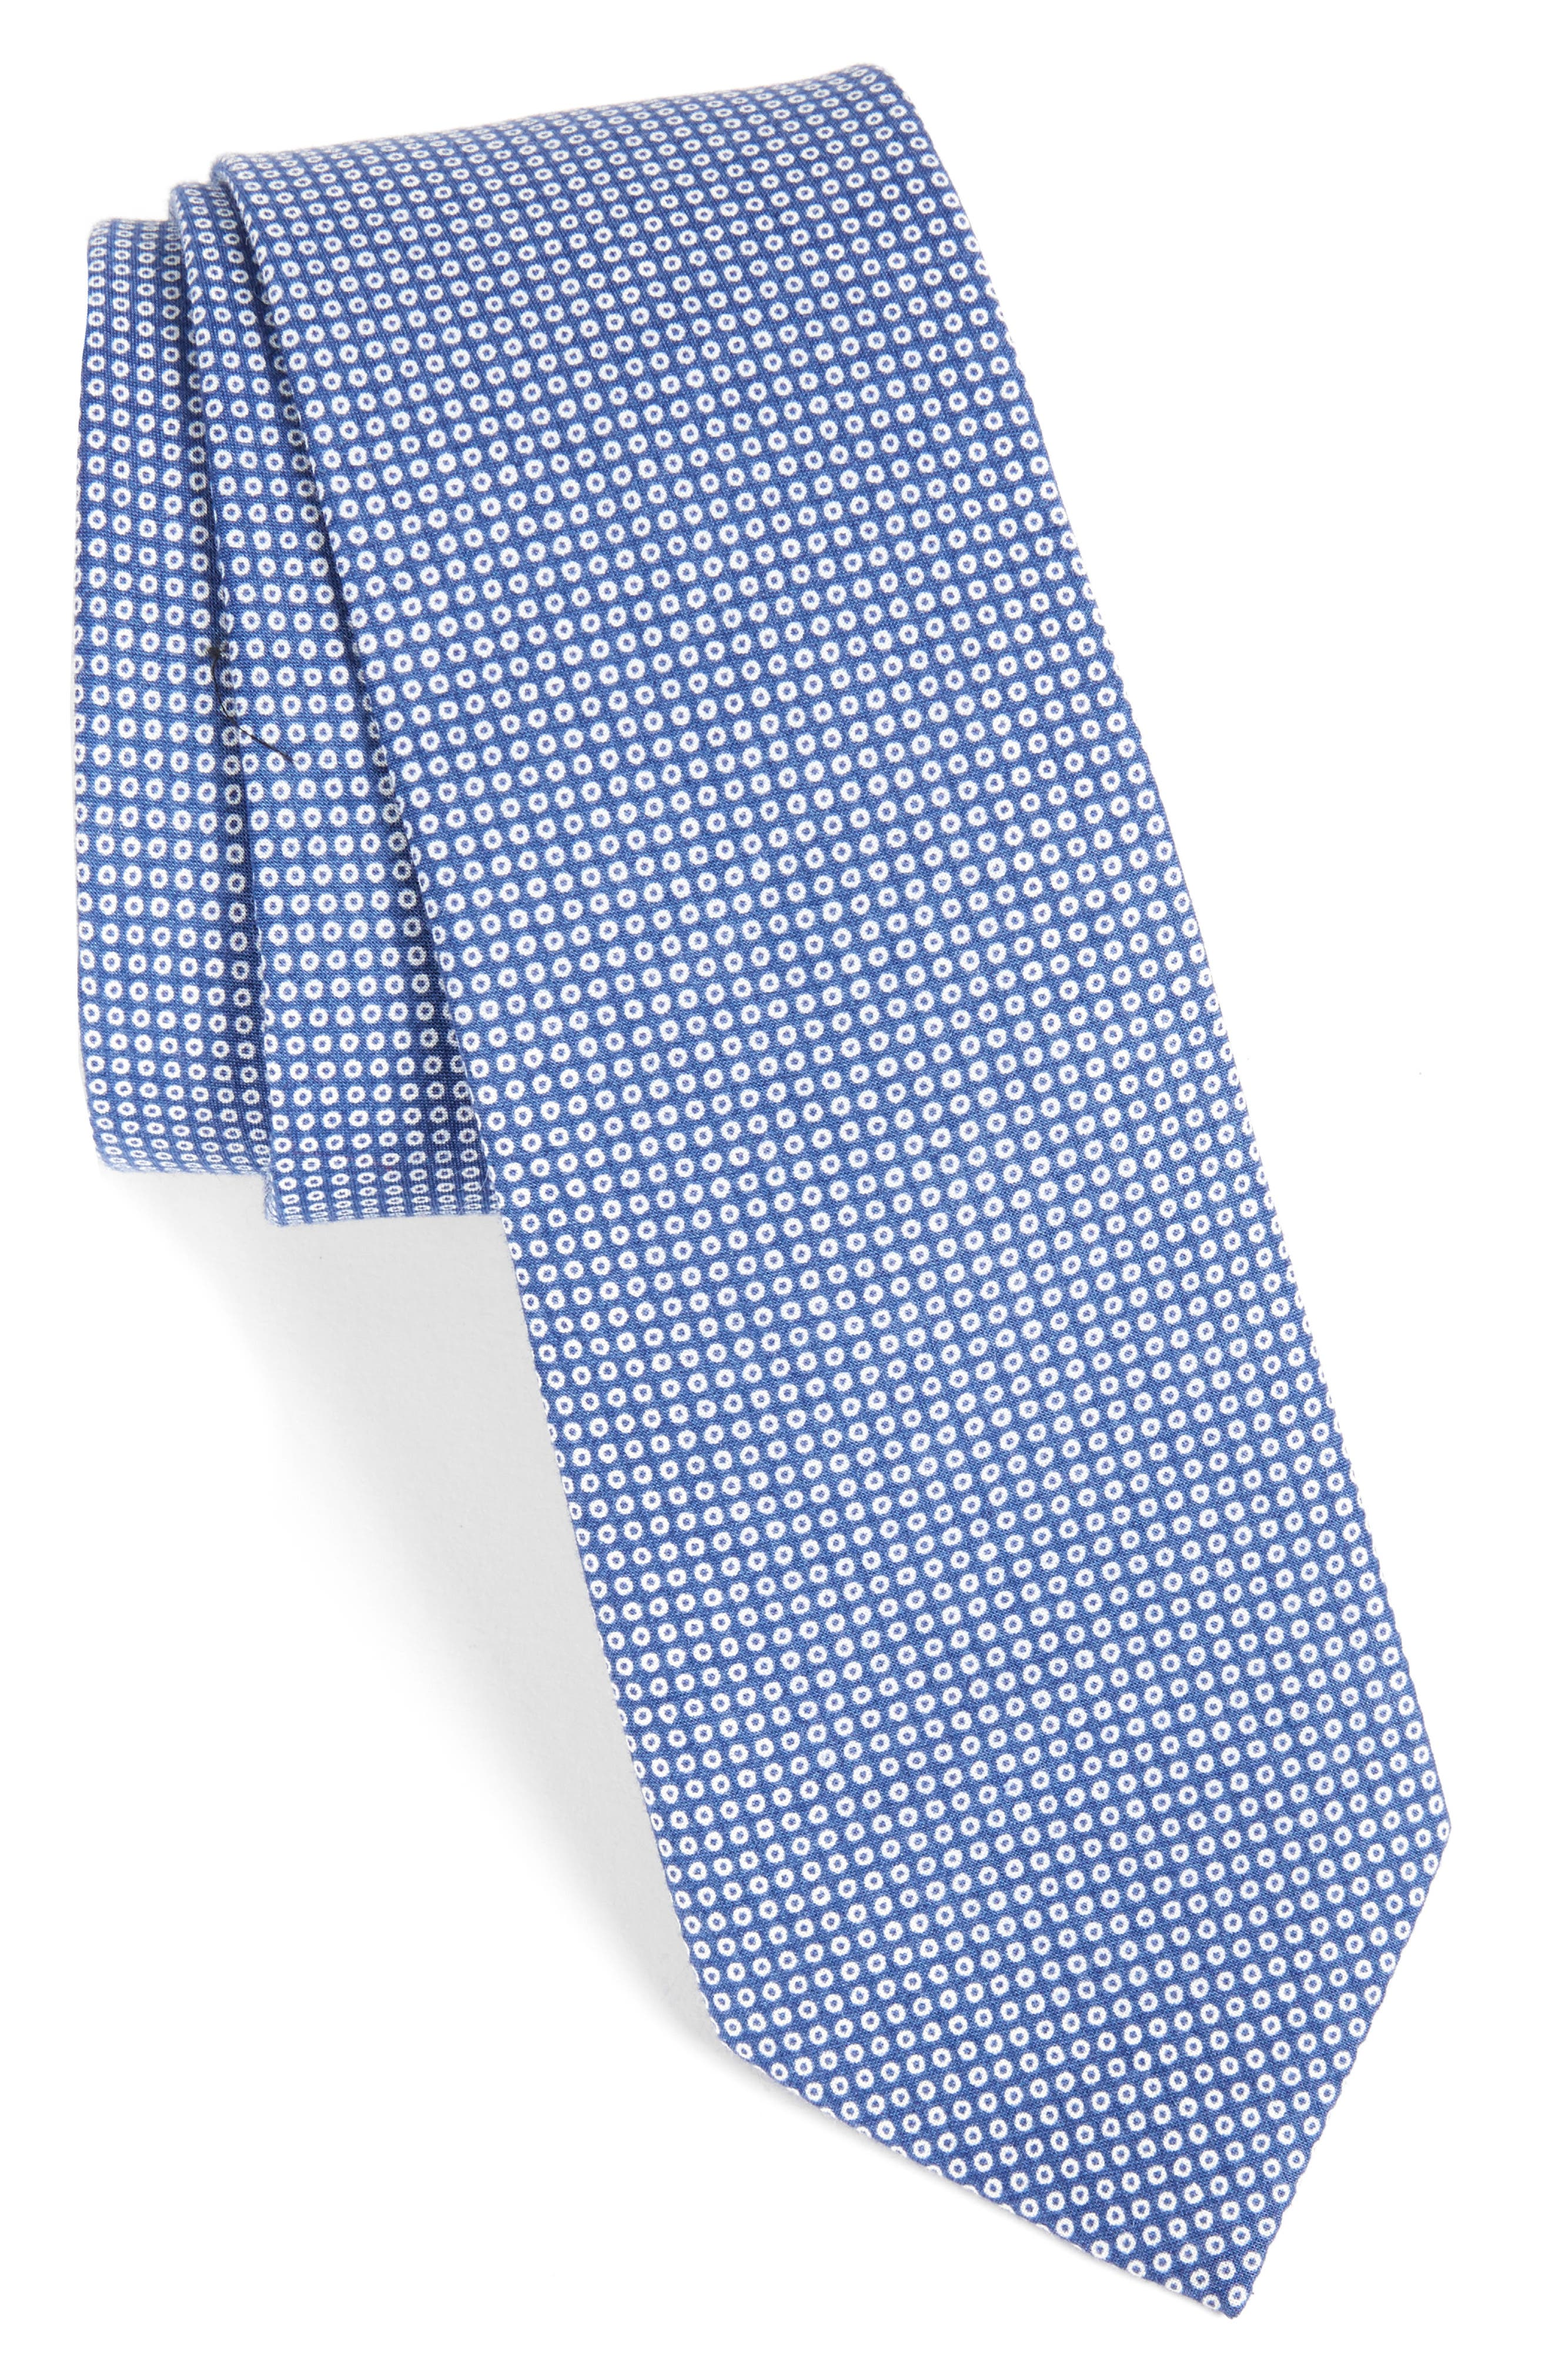 Mini Medallion Cotton Tie,                             Main thumbnail 1, color,                             BLUE